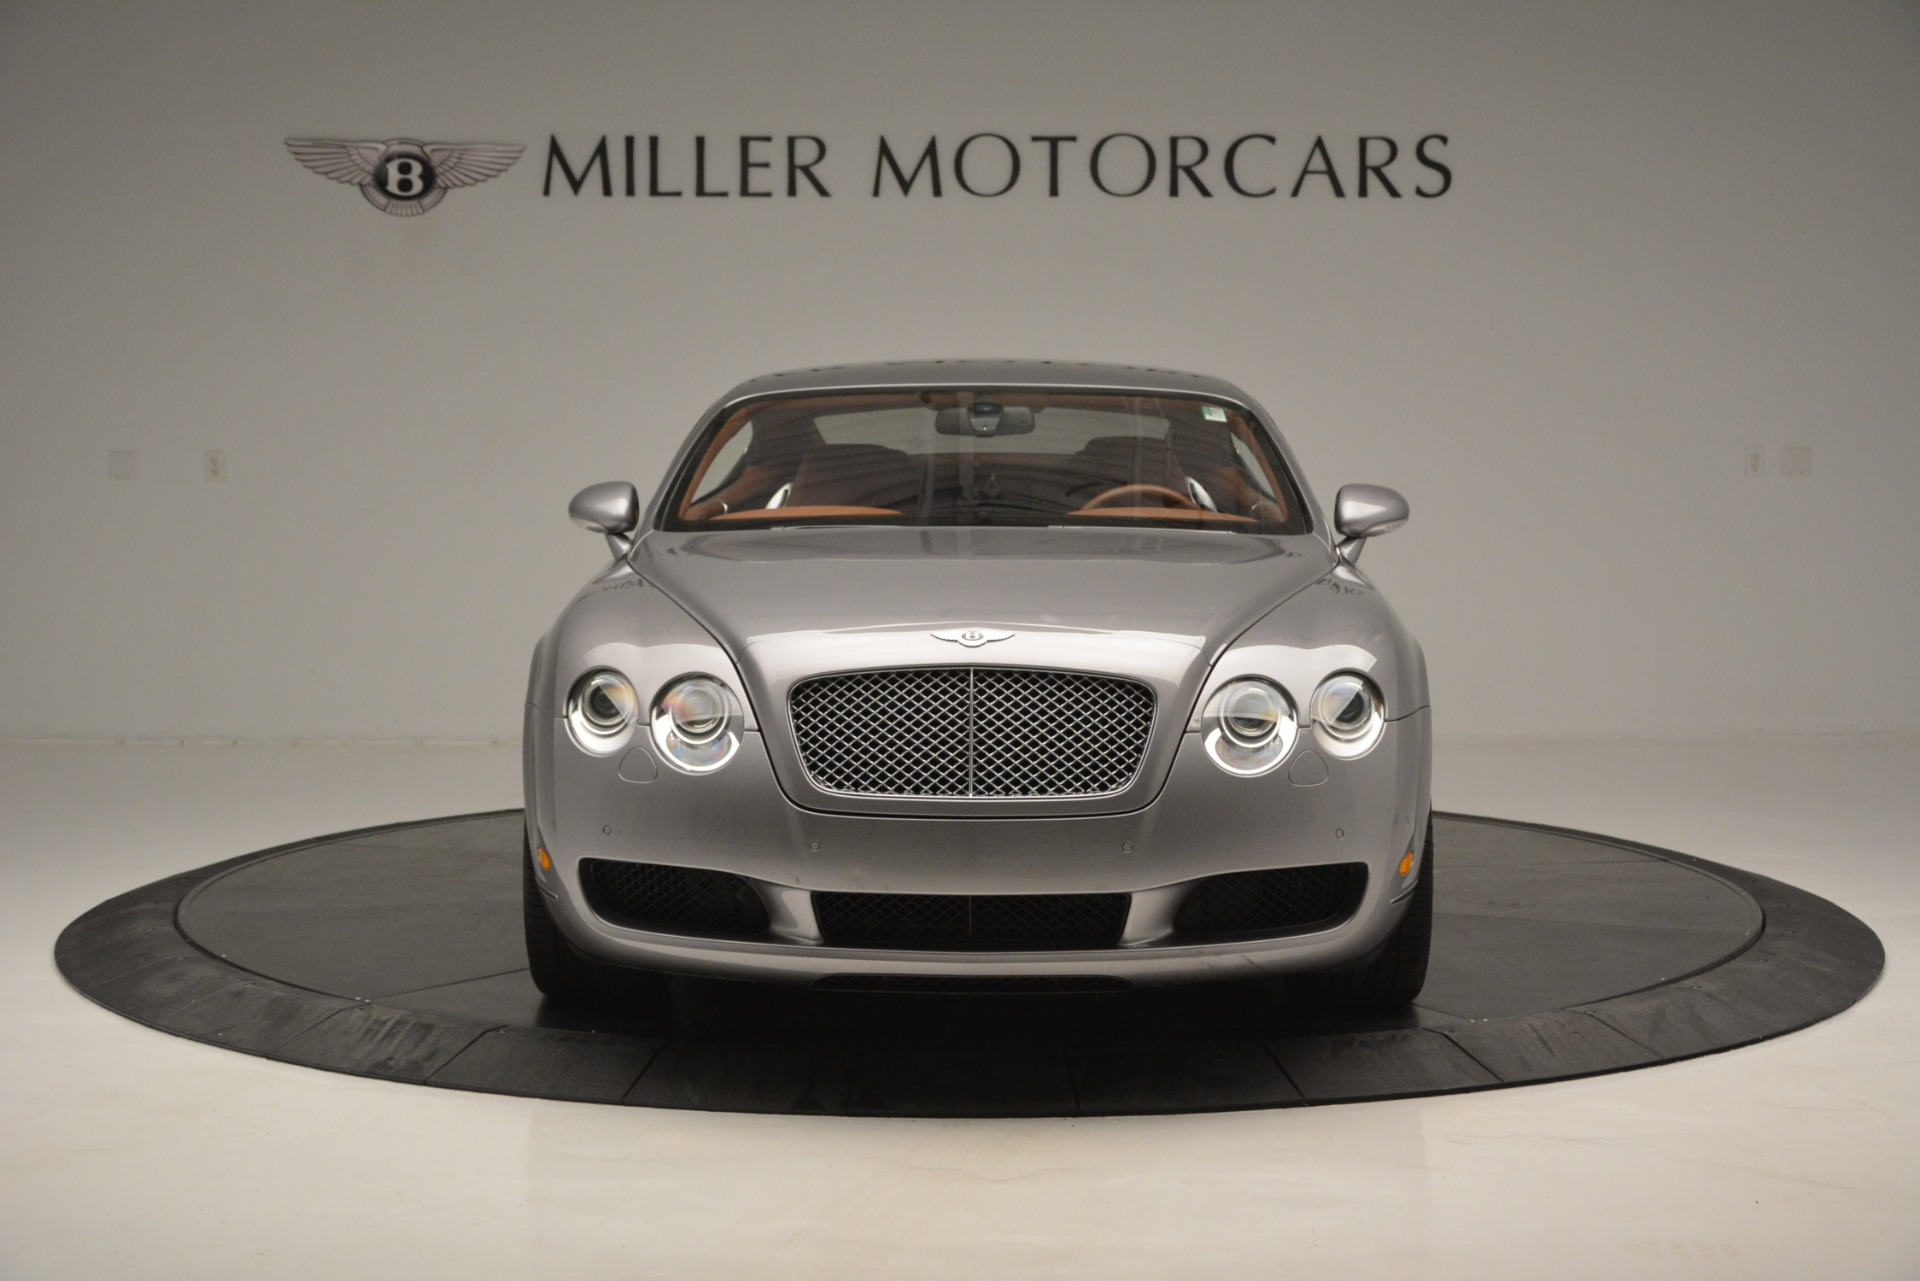 Used 2005 Bentley Continental GT GT Turbo For Sale In Greenwich, CT 2726_p12